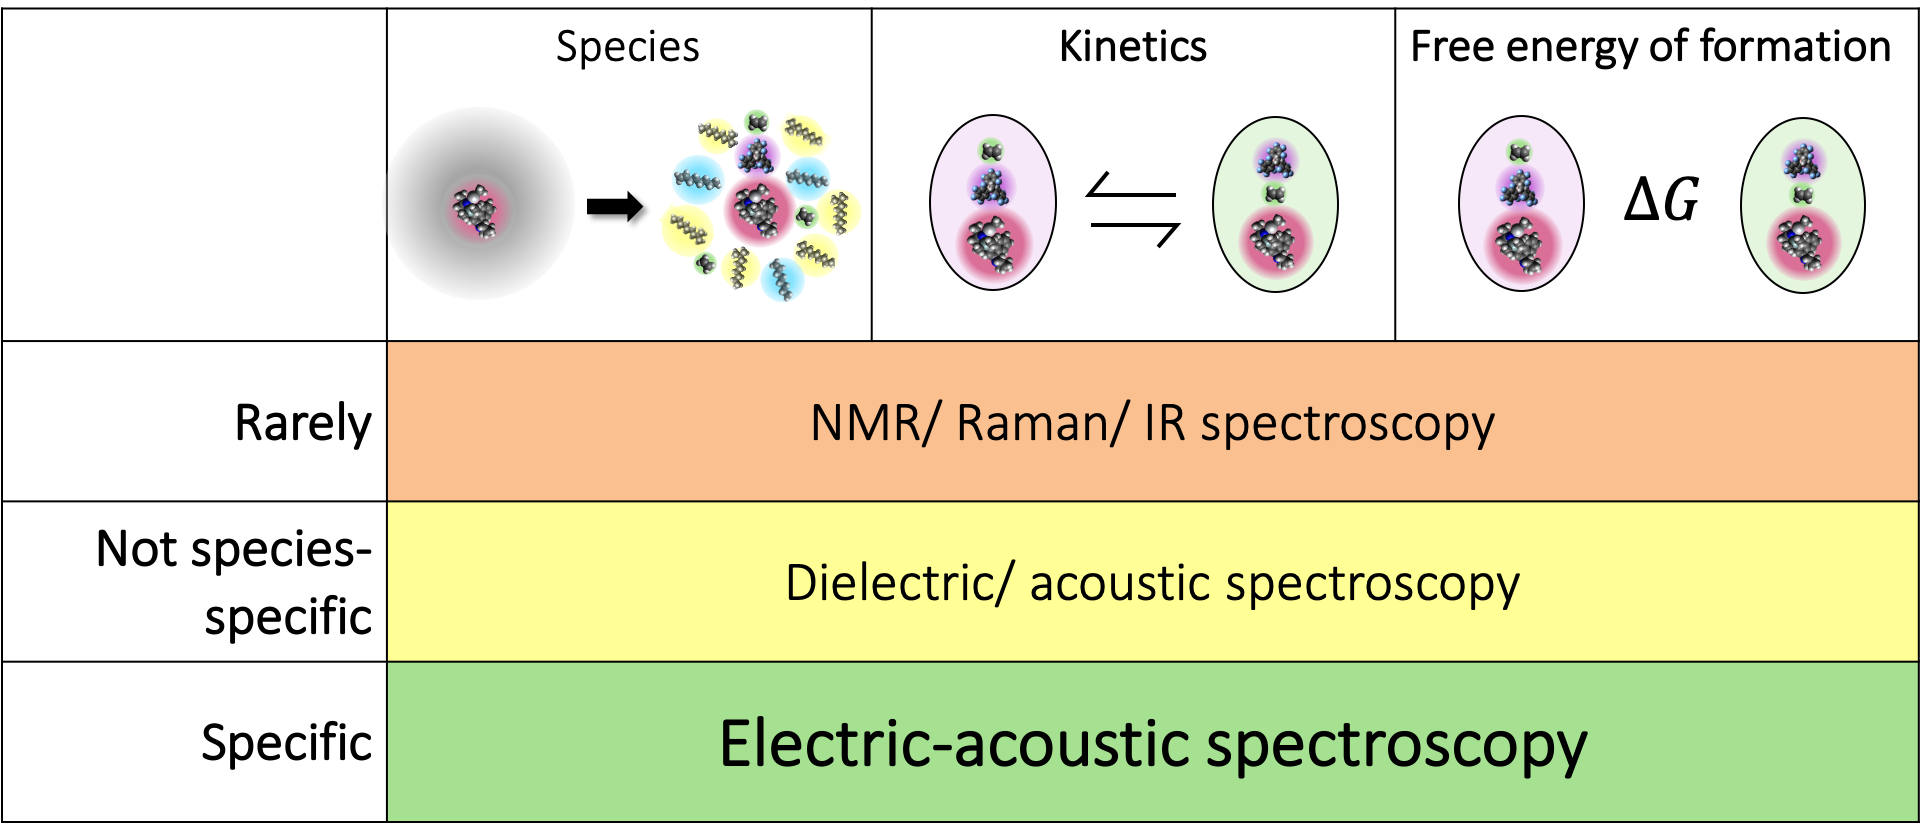 Species, kinetics, and free energies of formation and their detection by NMR, acoustic technics, and our proposed spectroscopy